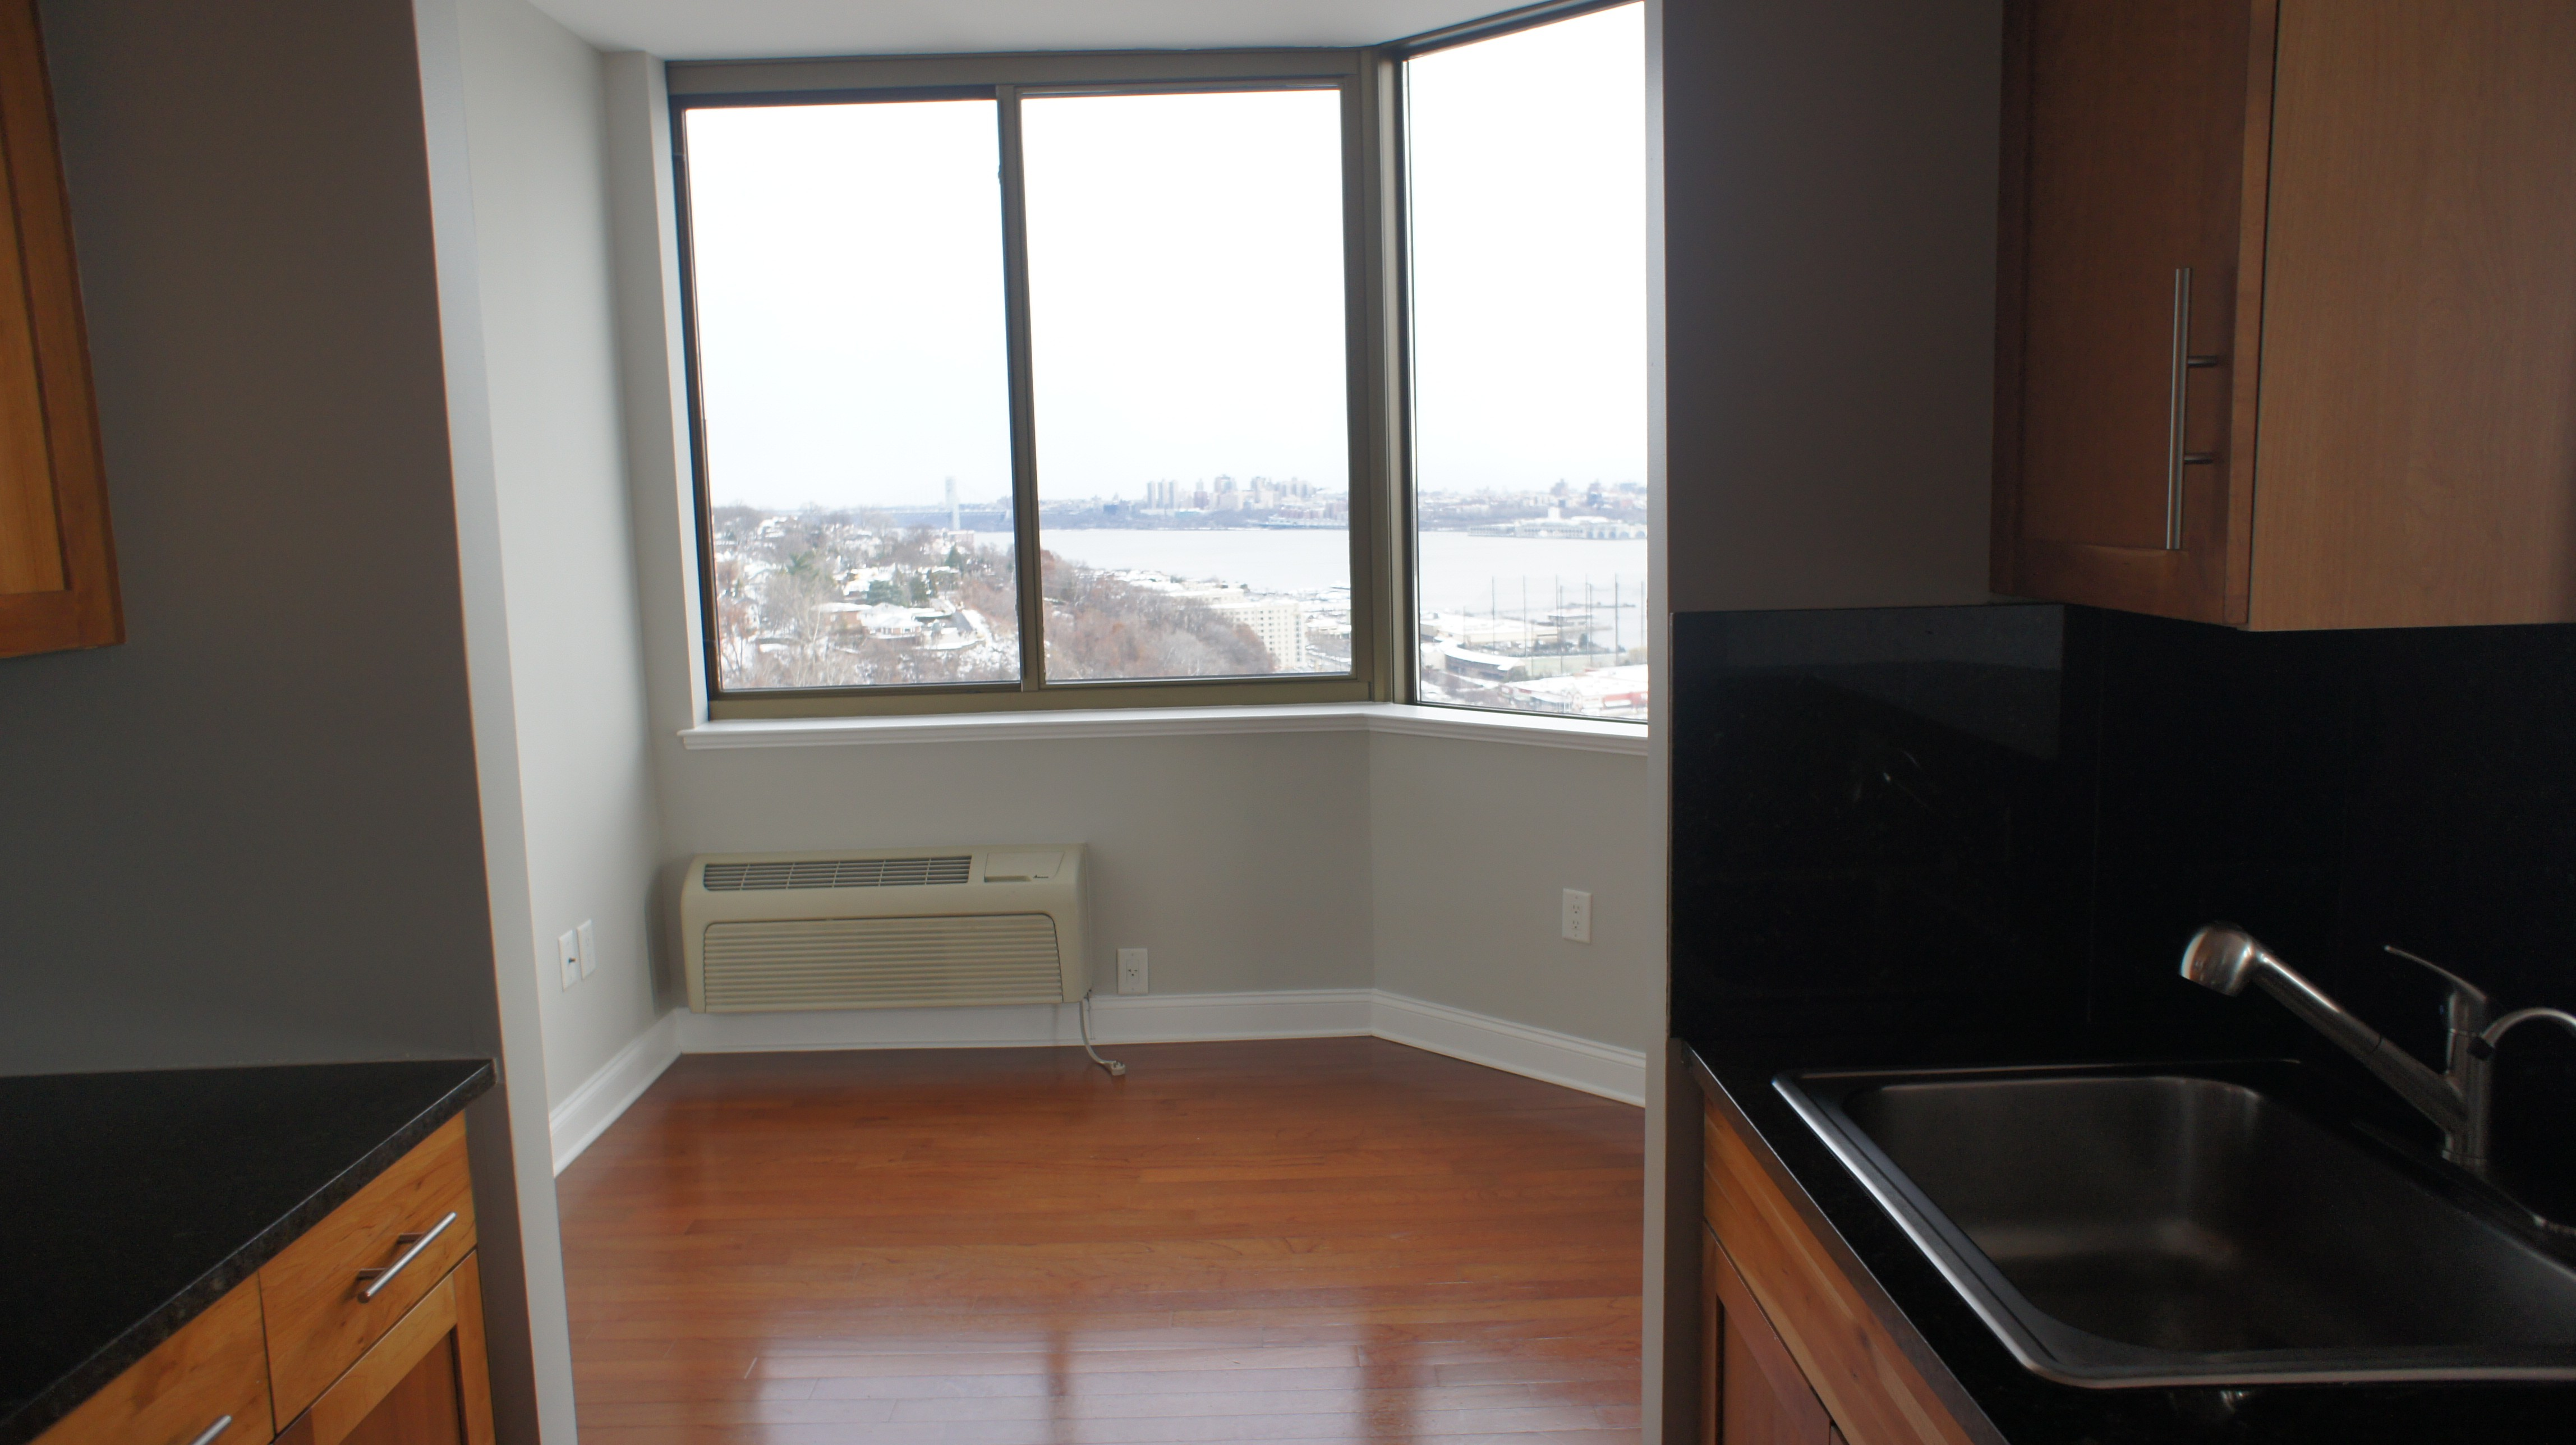 95 gorge rd 4269 edgewater nj 07020 1 bedroom apartment for 105 lighthouse terrace edgewater nj